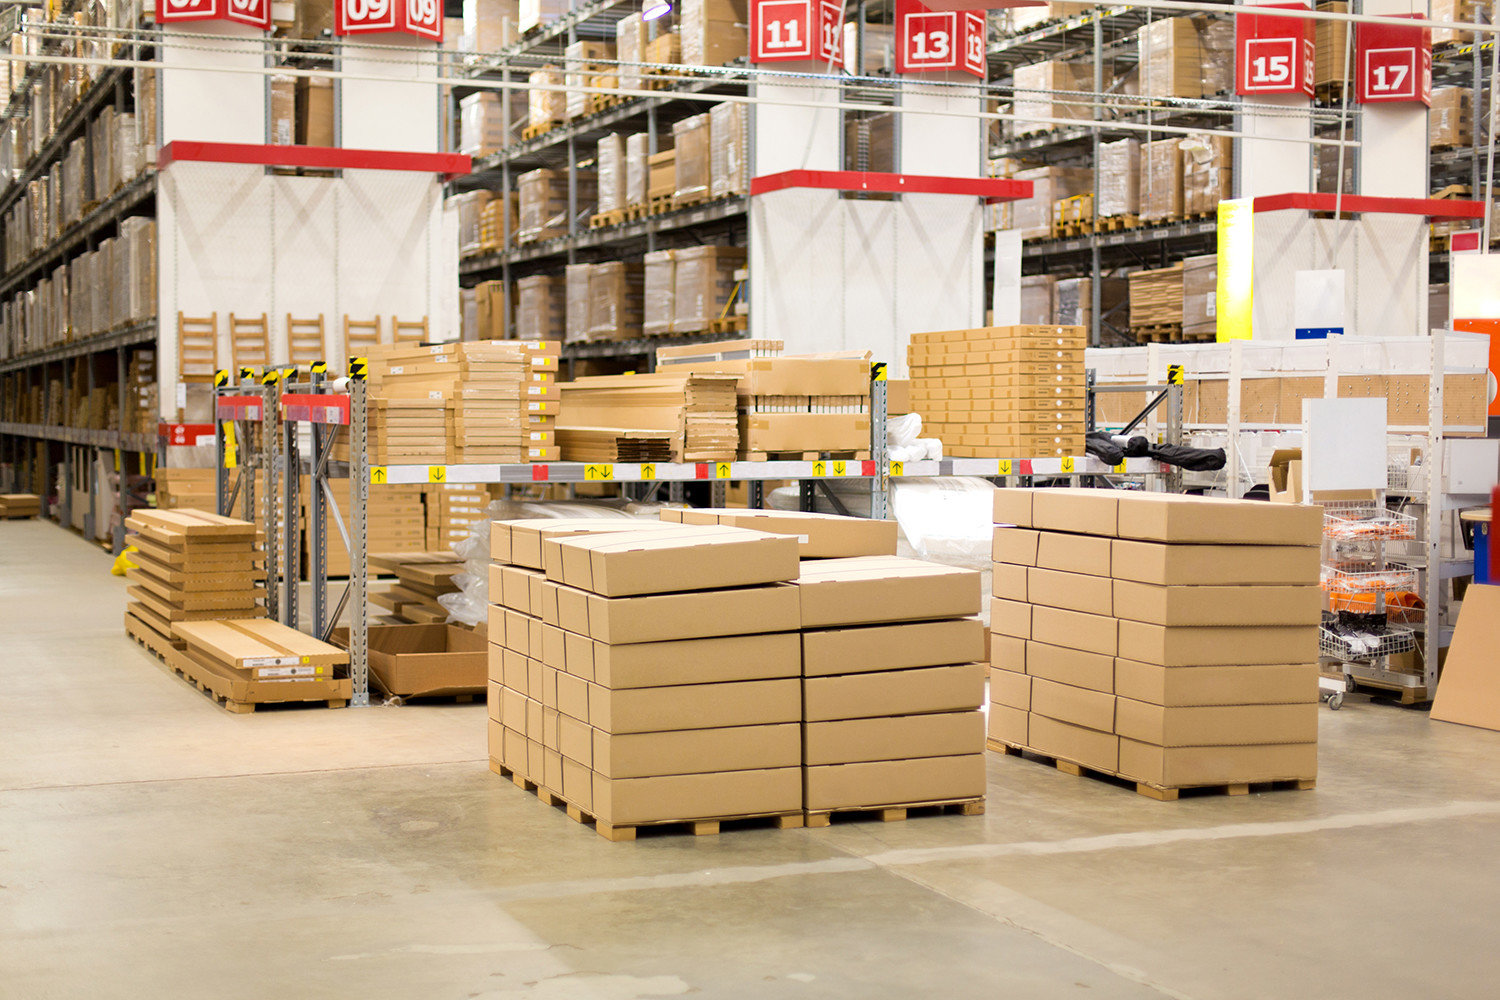 Retail Applications - Put Away|Australia CipherLab world leader in AIDC solutions